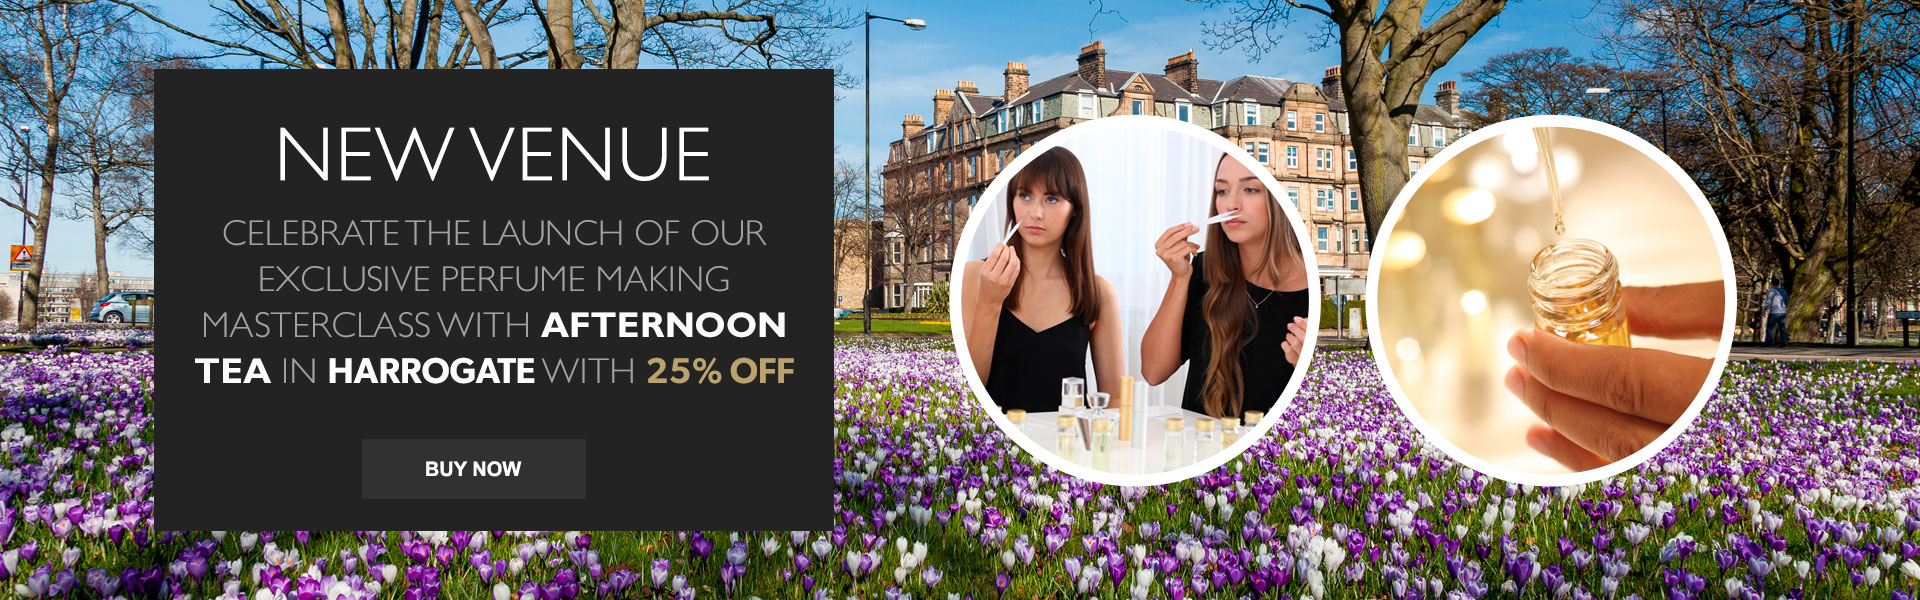 NEW VENUE - Celebrate the Launch of our Exclusive Perfume Making Masterclass in Harrogate with 25% Off